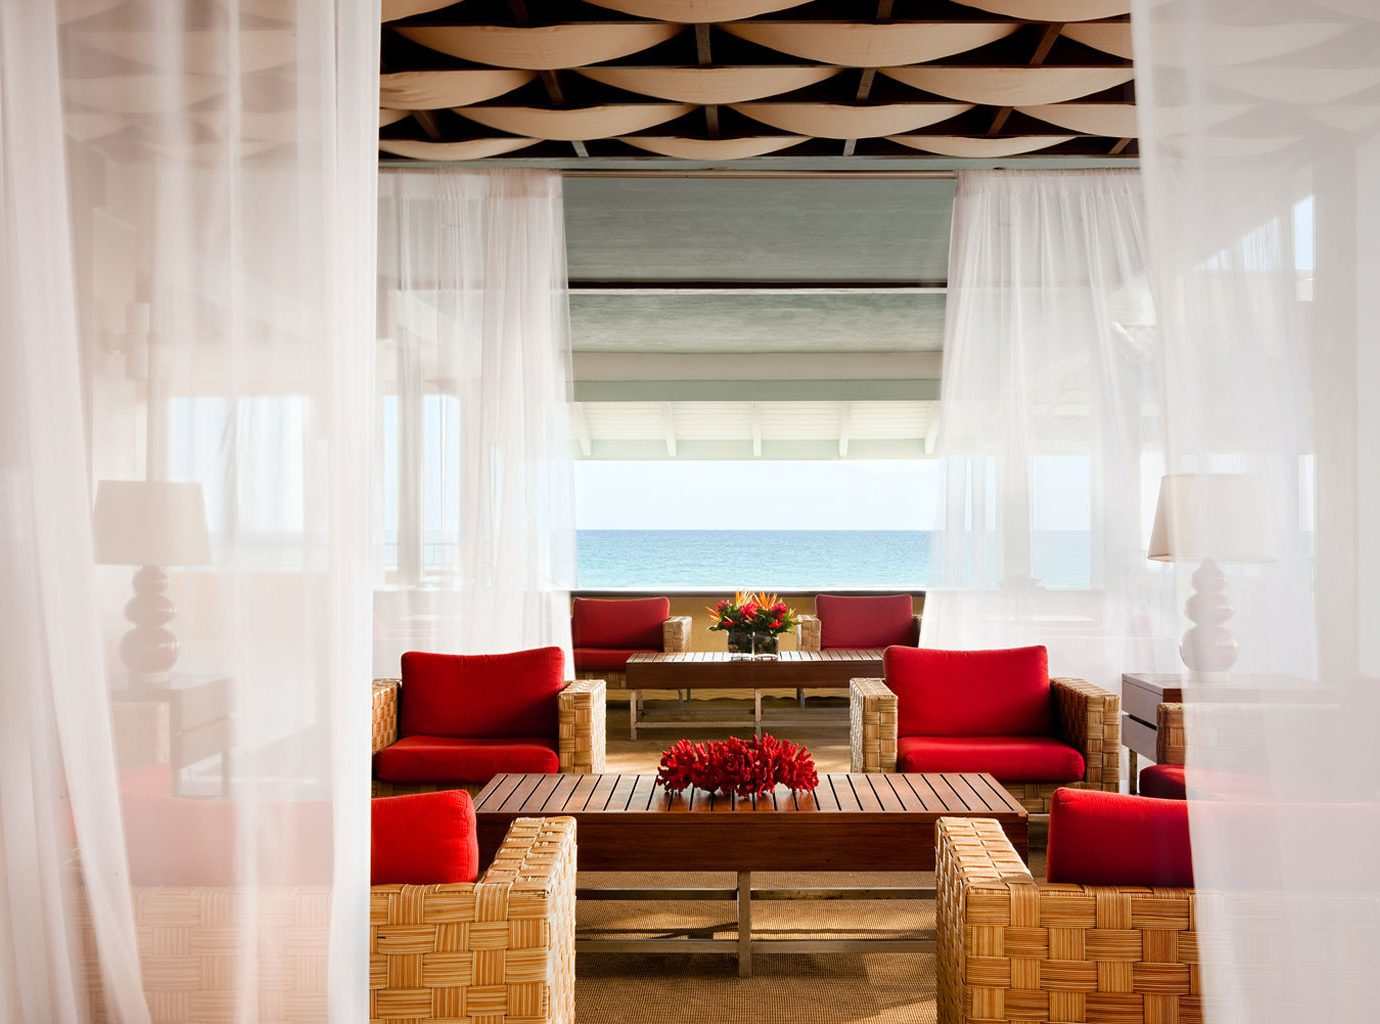 Honeymoon Hotels Lounge Resort Romance Scenic views Trip Ideas Waterfront indoor floor room window living room property curtain interior design red window covering window treatment home white ceiling Design textile Suite decor furniture